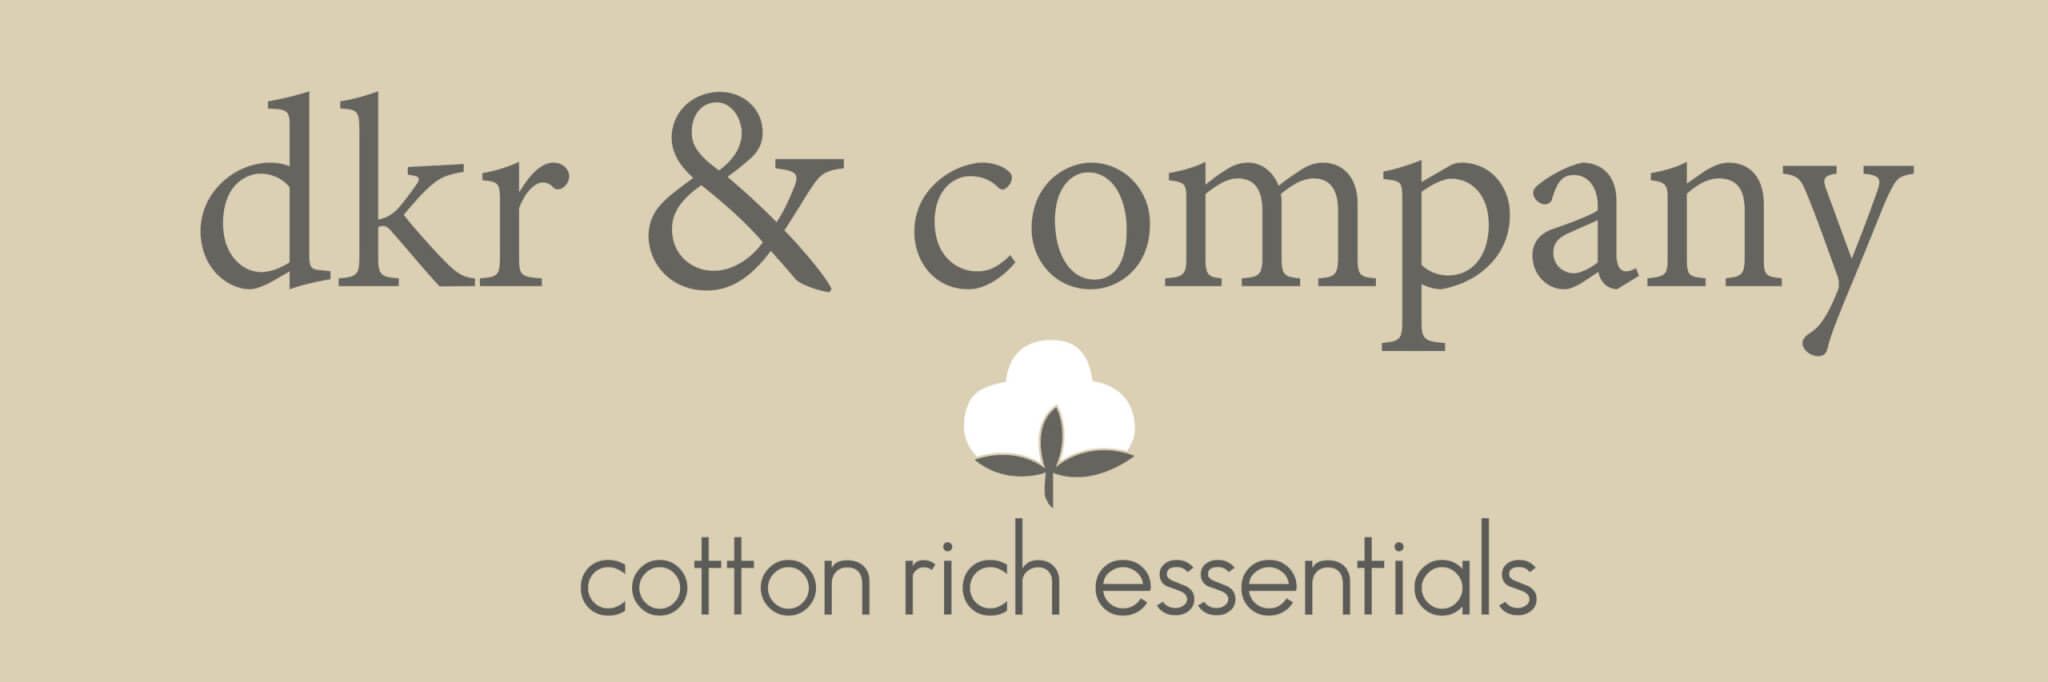 DKR Cotton Essentials Sign REVISED